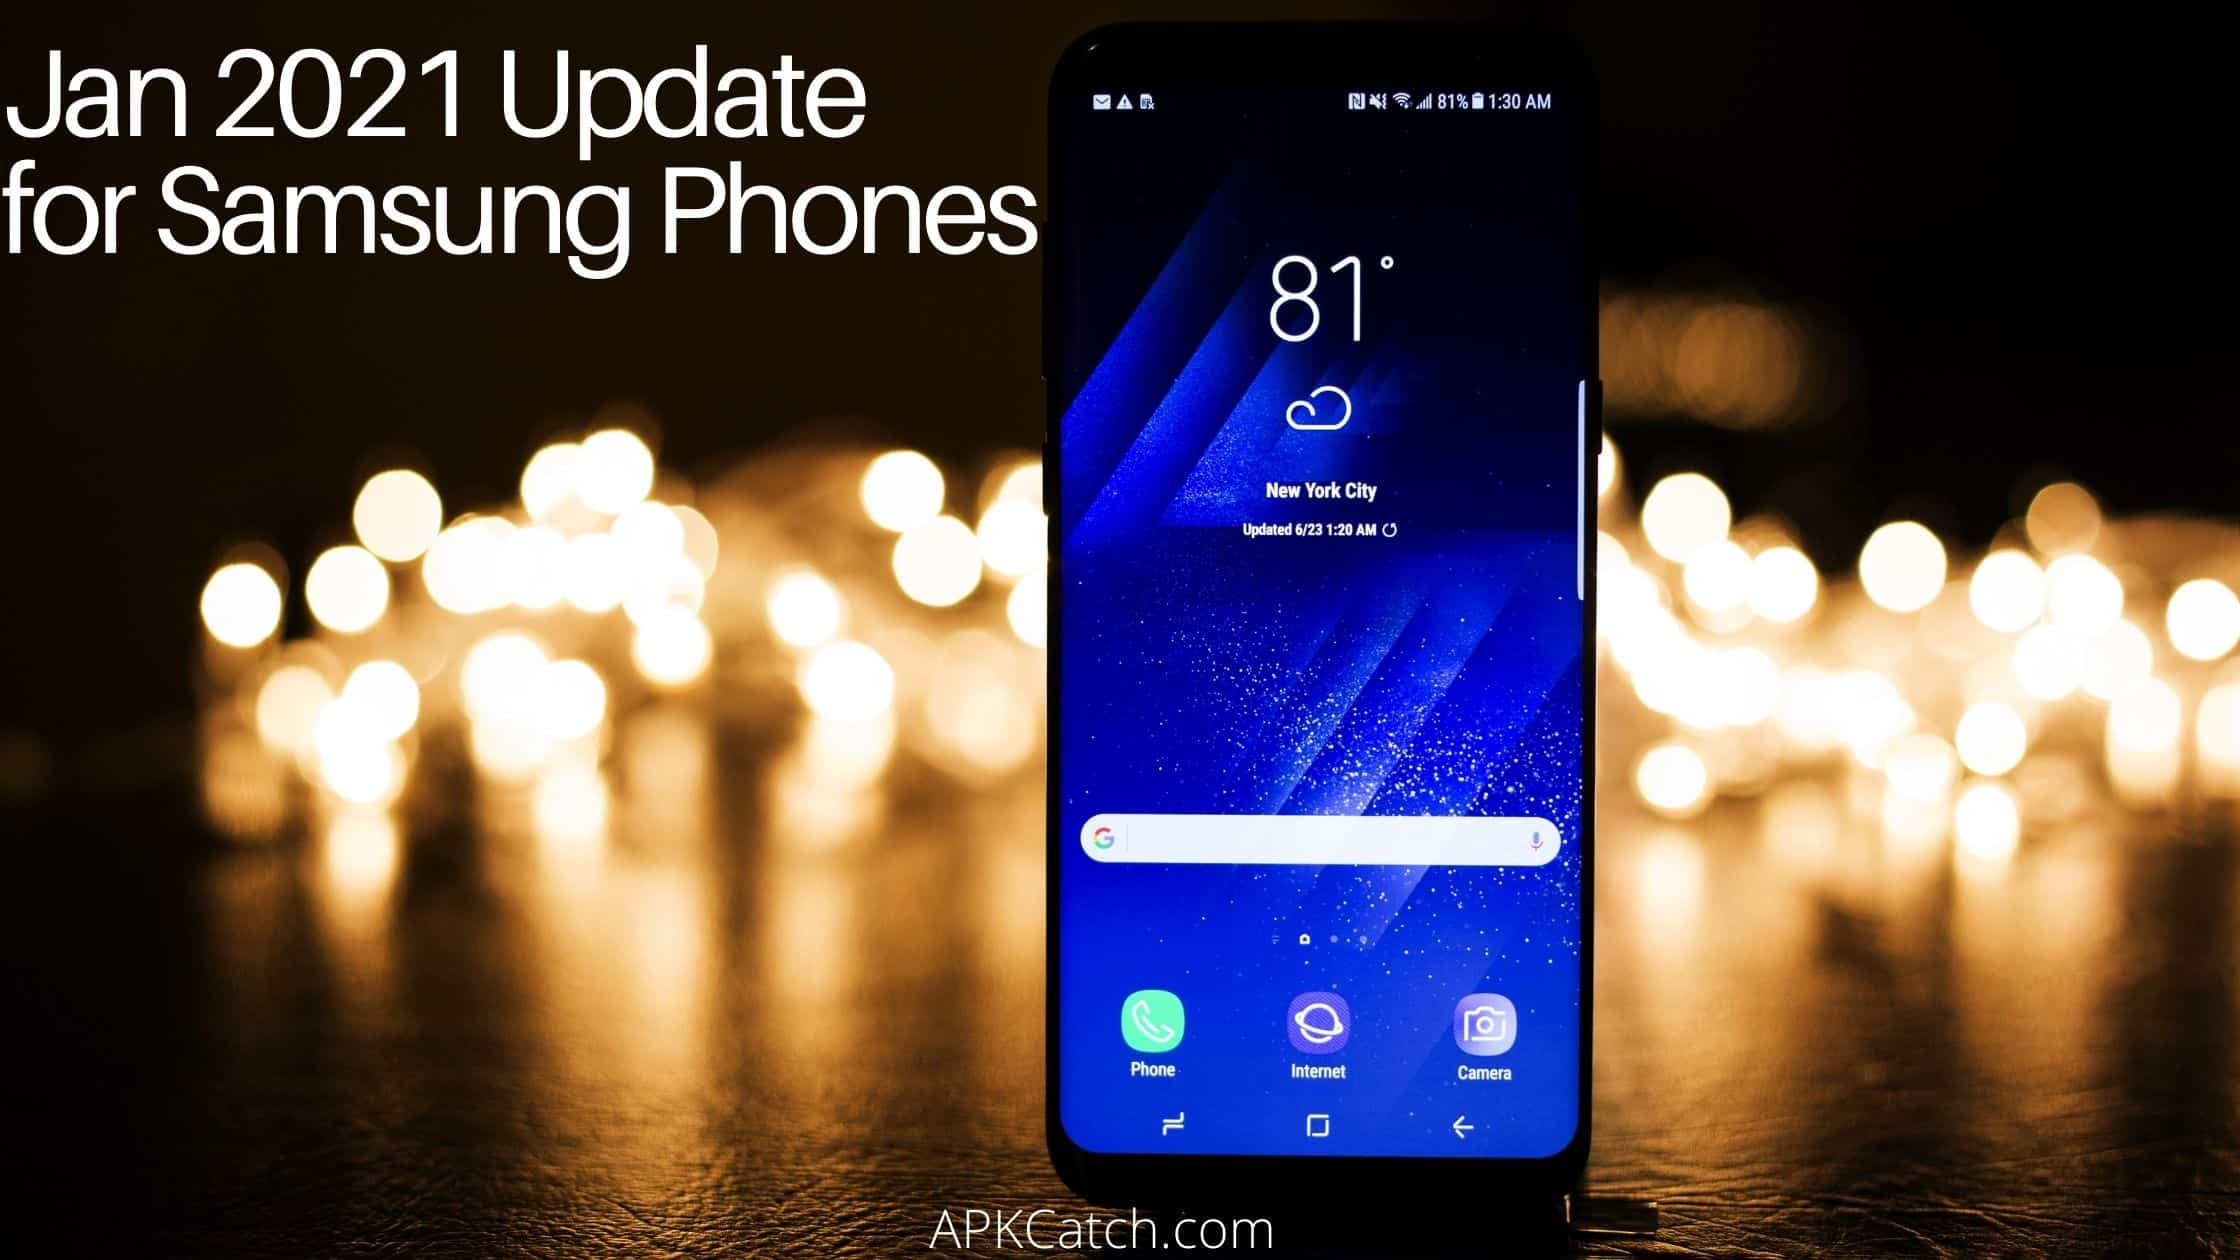 Samsung Rolling Out January 2021 Security Patch for Verizon Galaxy S9, S10, S21 in US